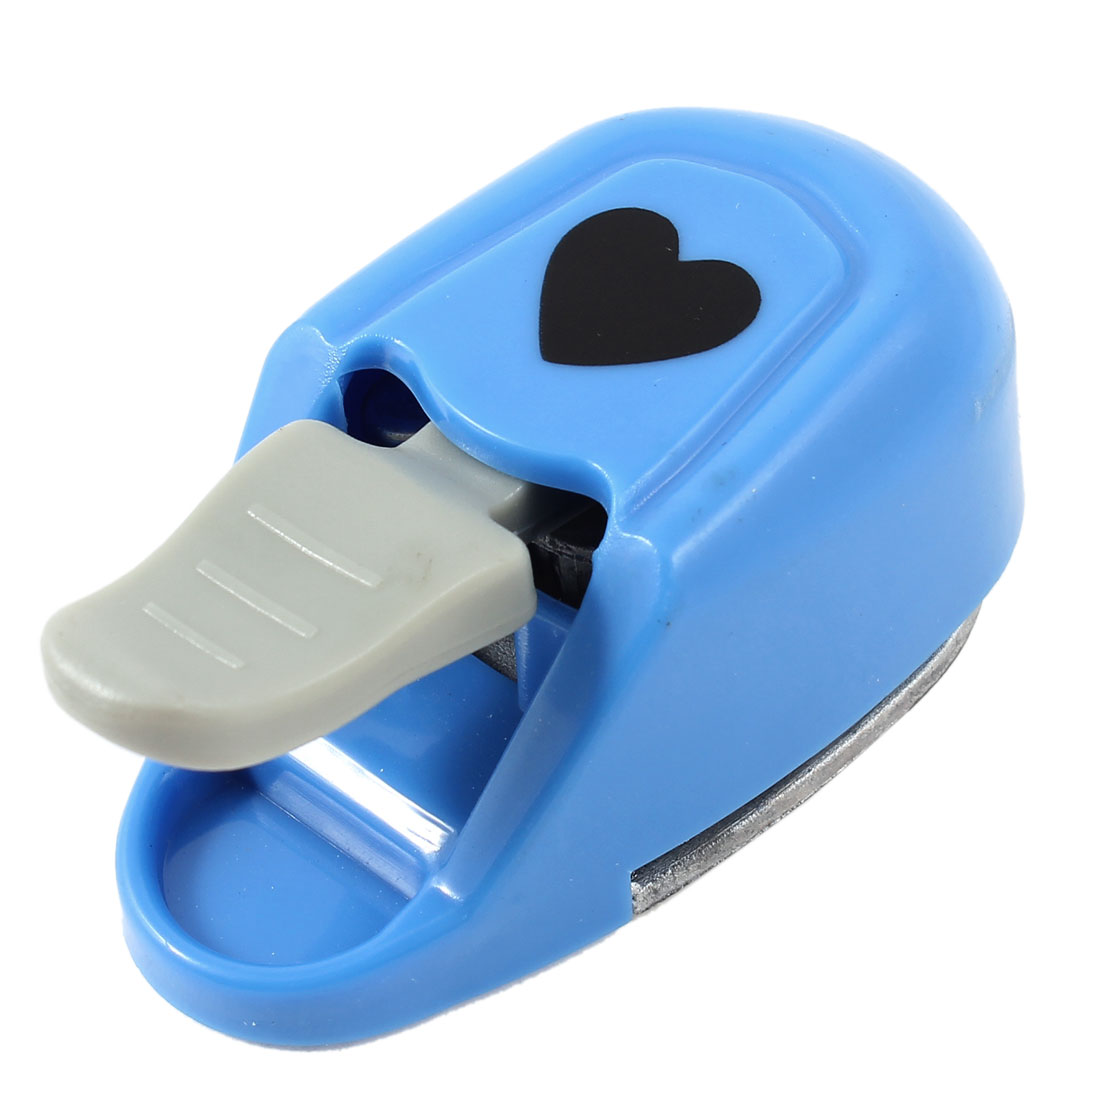 Blue Plastic Coated Heart Pattern Cutout Paper Shaper Card Making Craft Punch Punching Tool